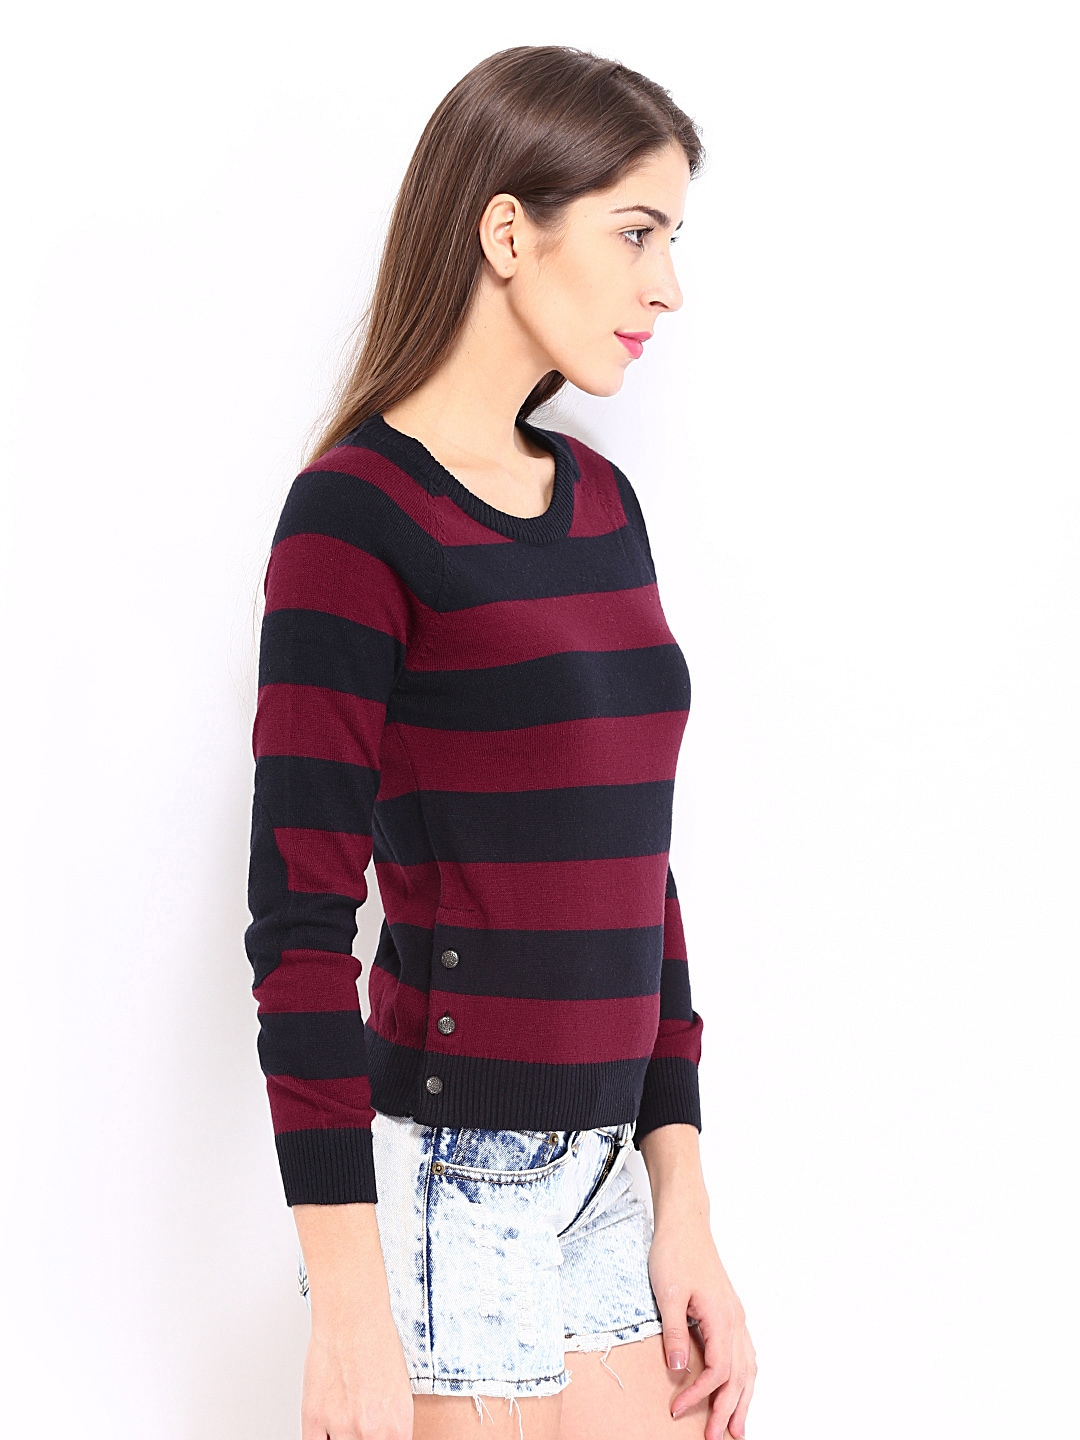 Red and Black Striped Dresses for Women | Dress images